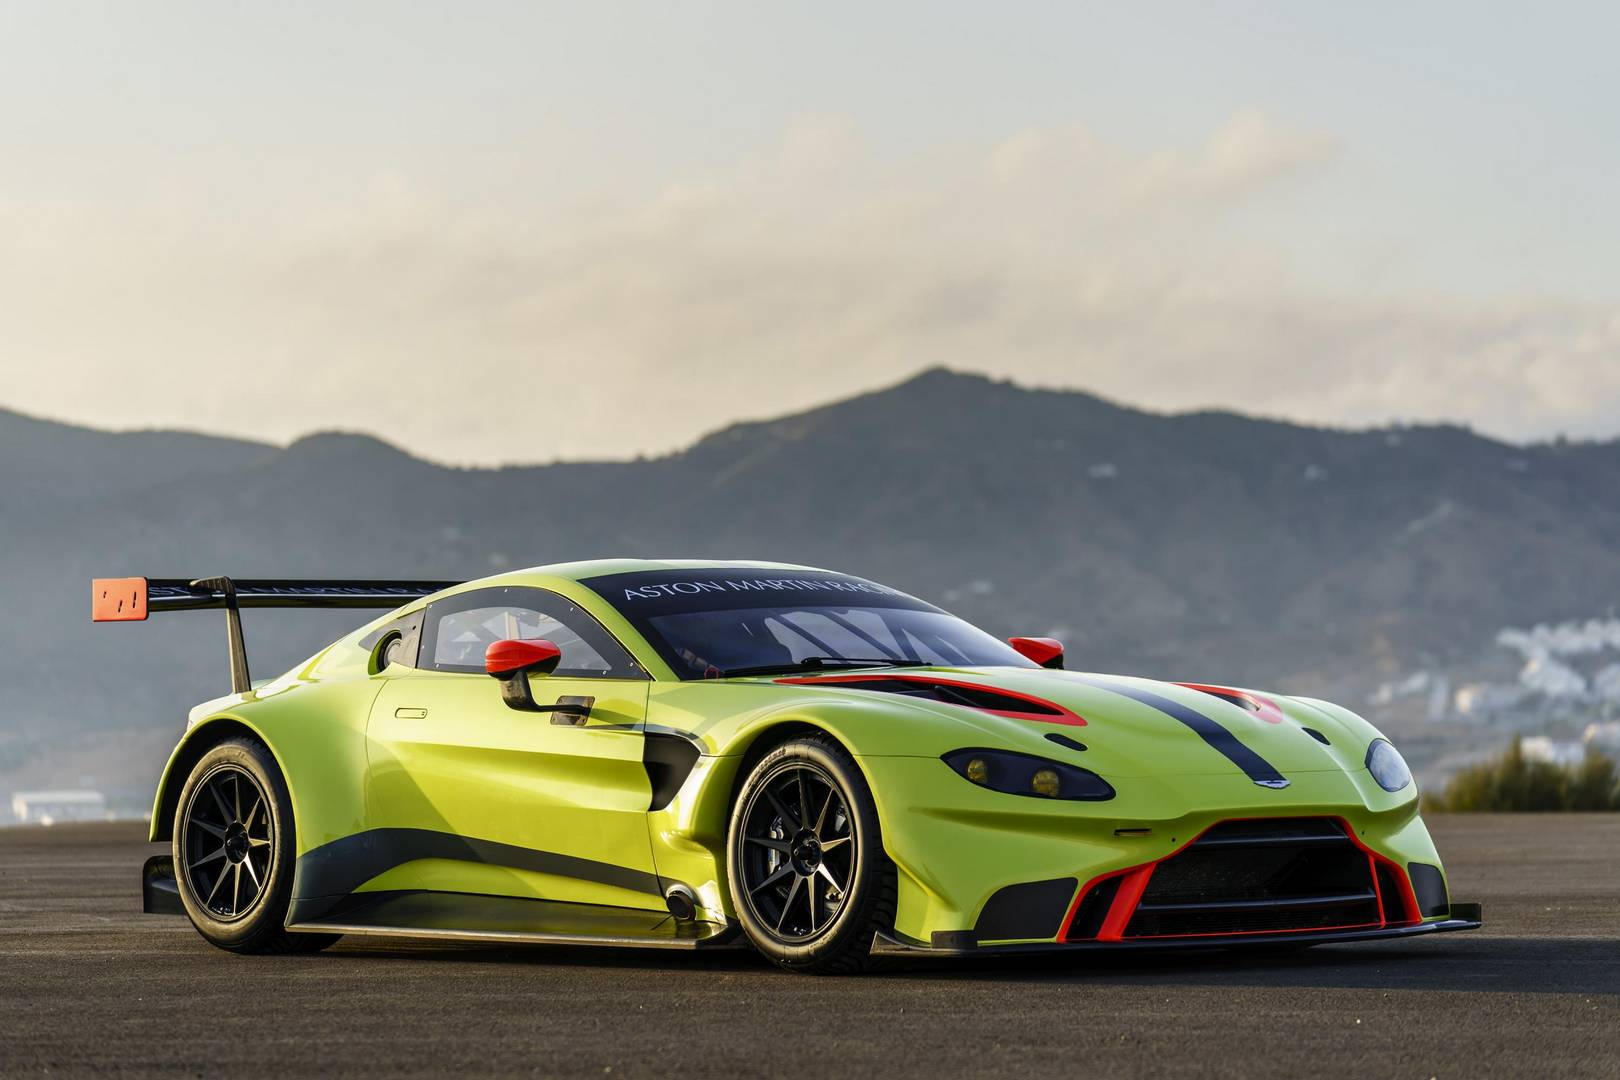 aston martin vantage 2018 side view. 2018 Aston Martin Vantage GTE. Supercar Side View